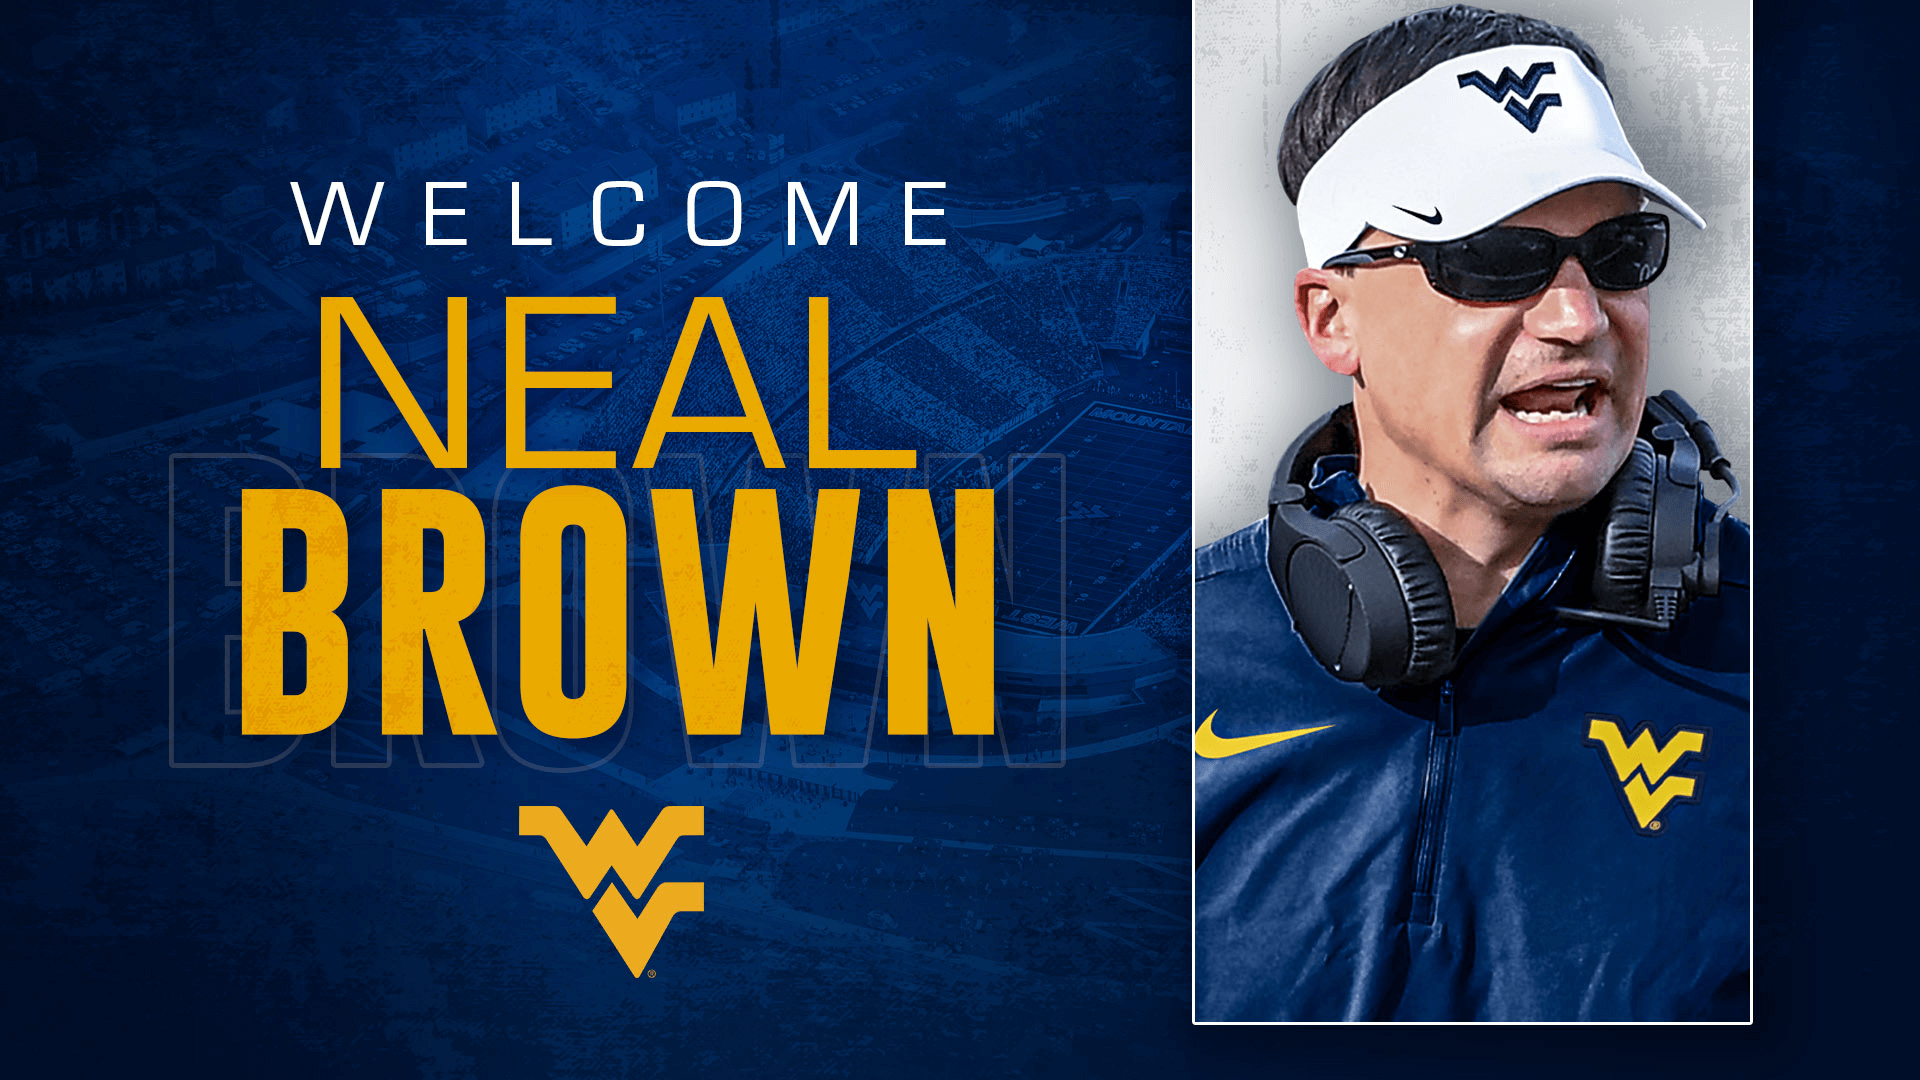 Pin by on wvu sports in 2020 Neal brown, Wvu